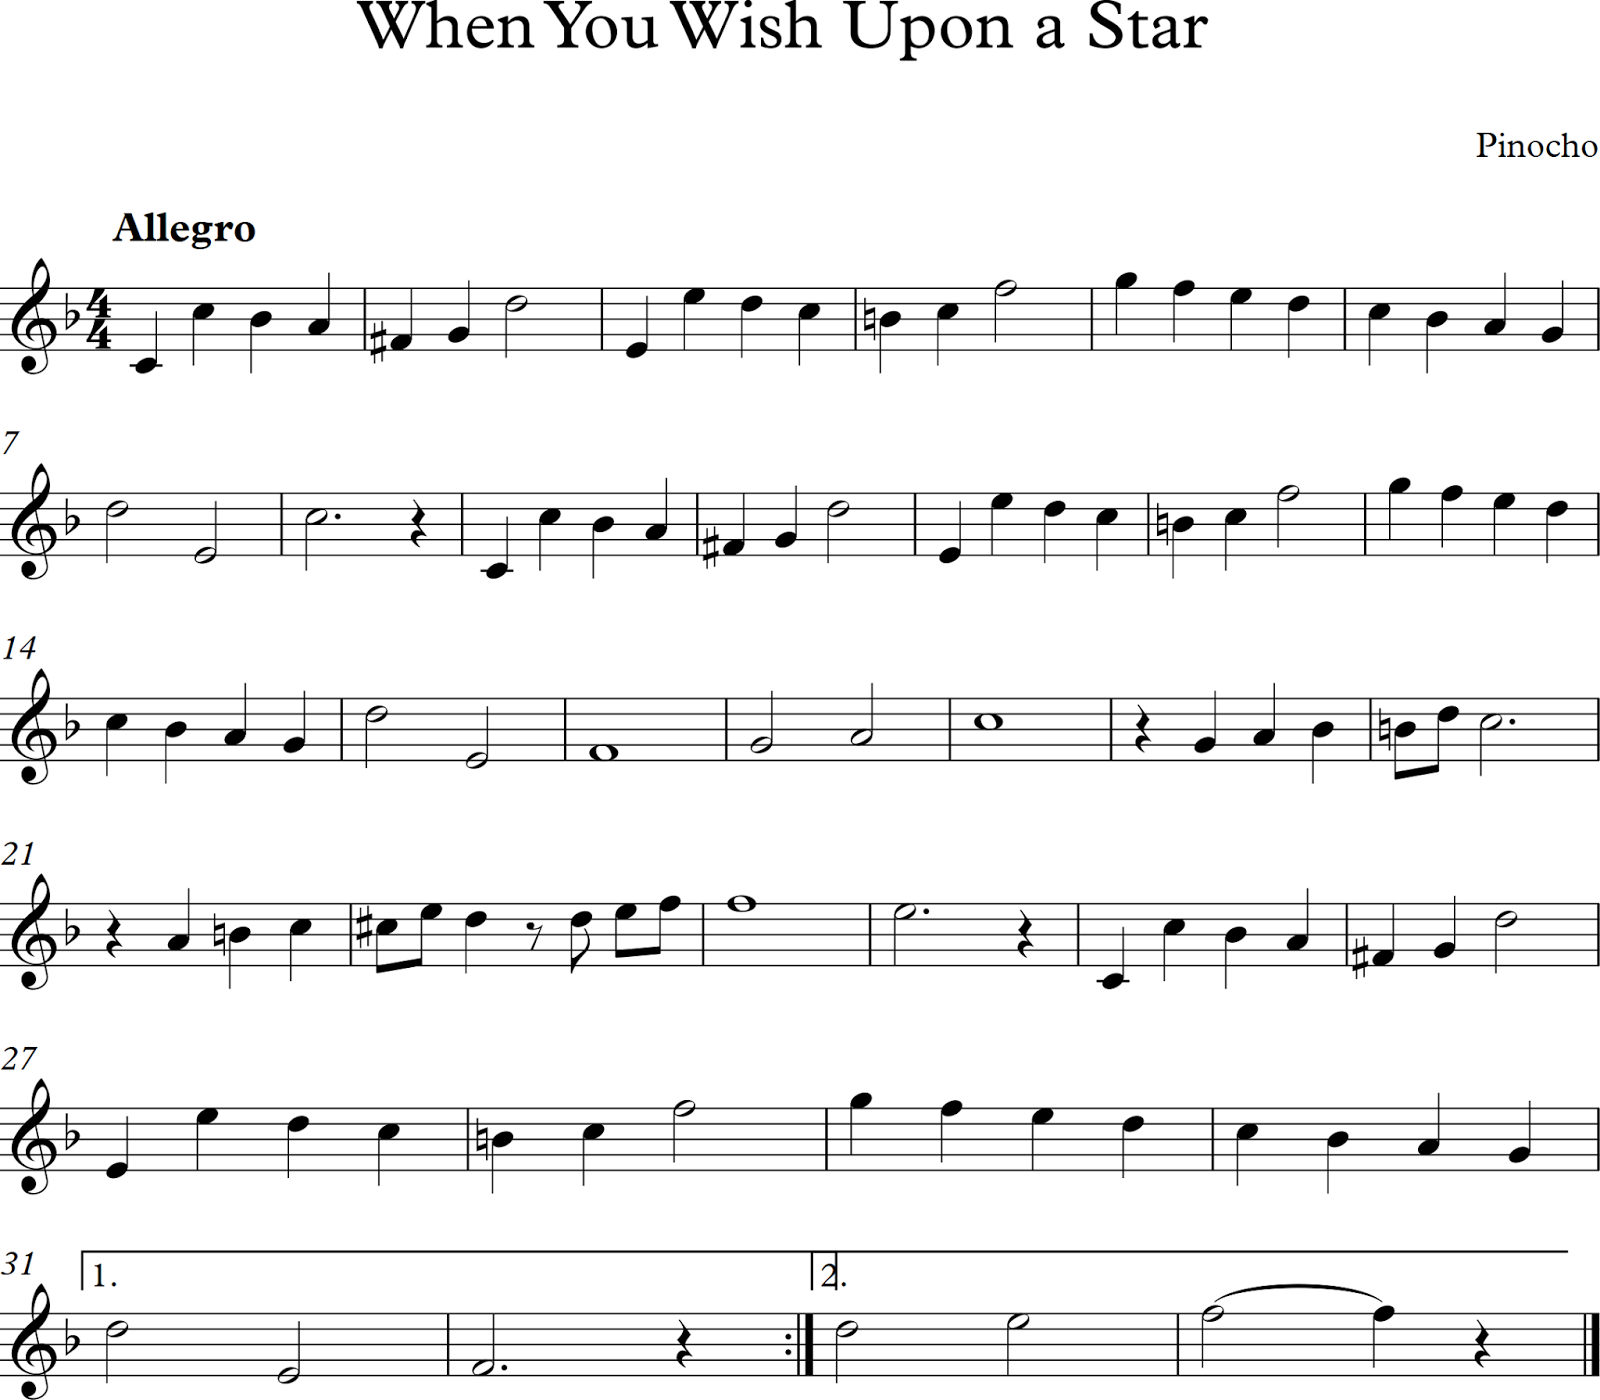 When You Wish Upon a Star (Pinocho)